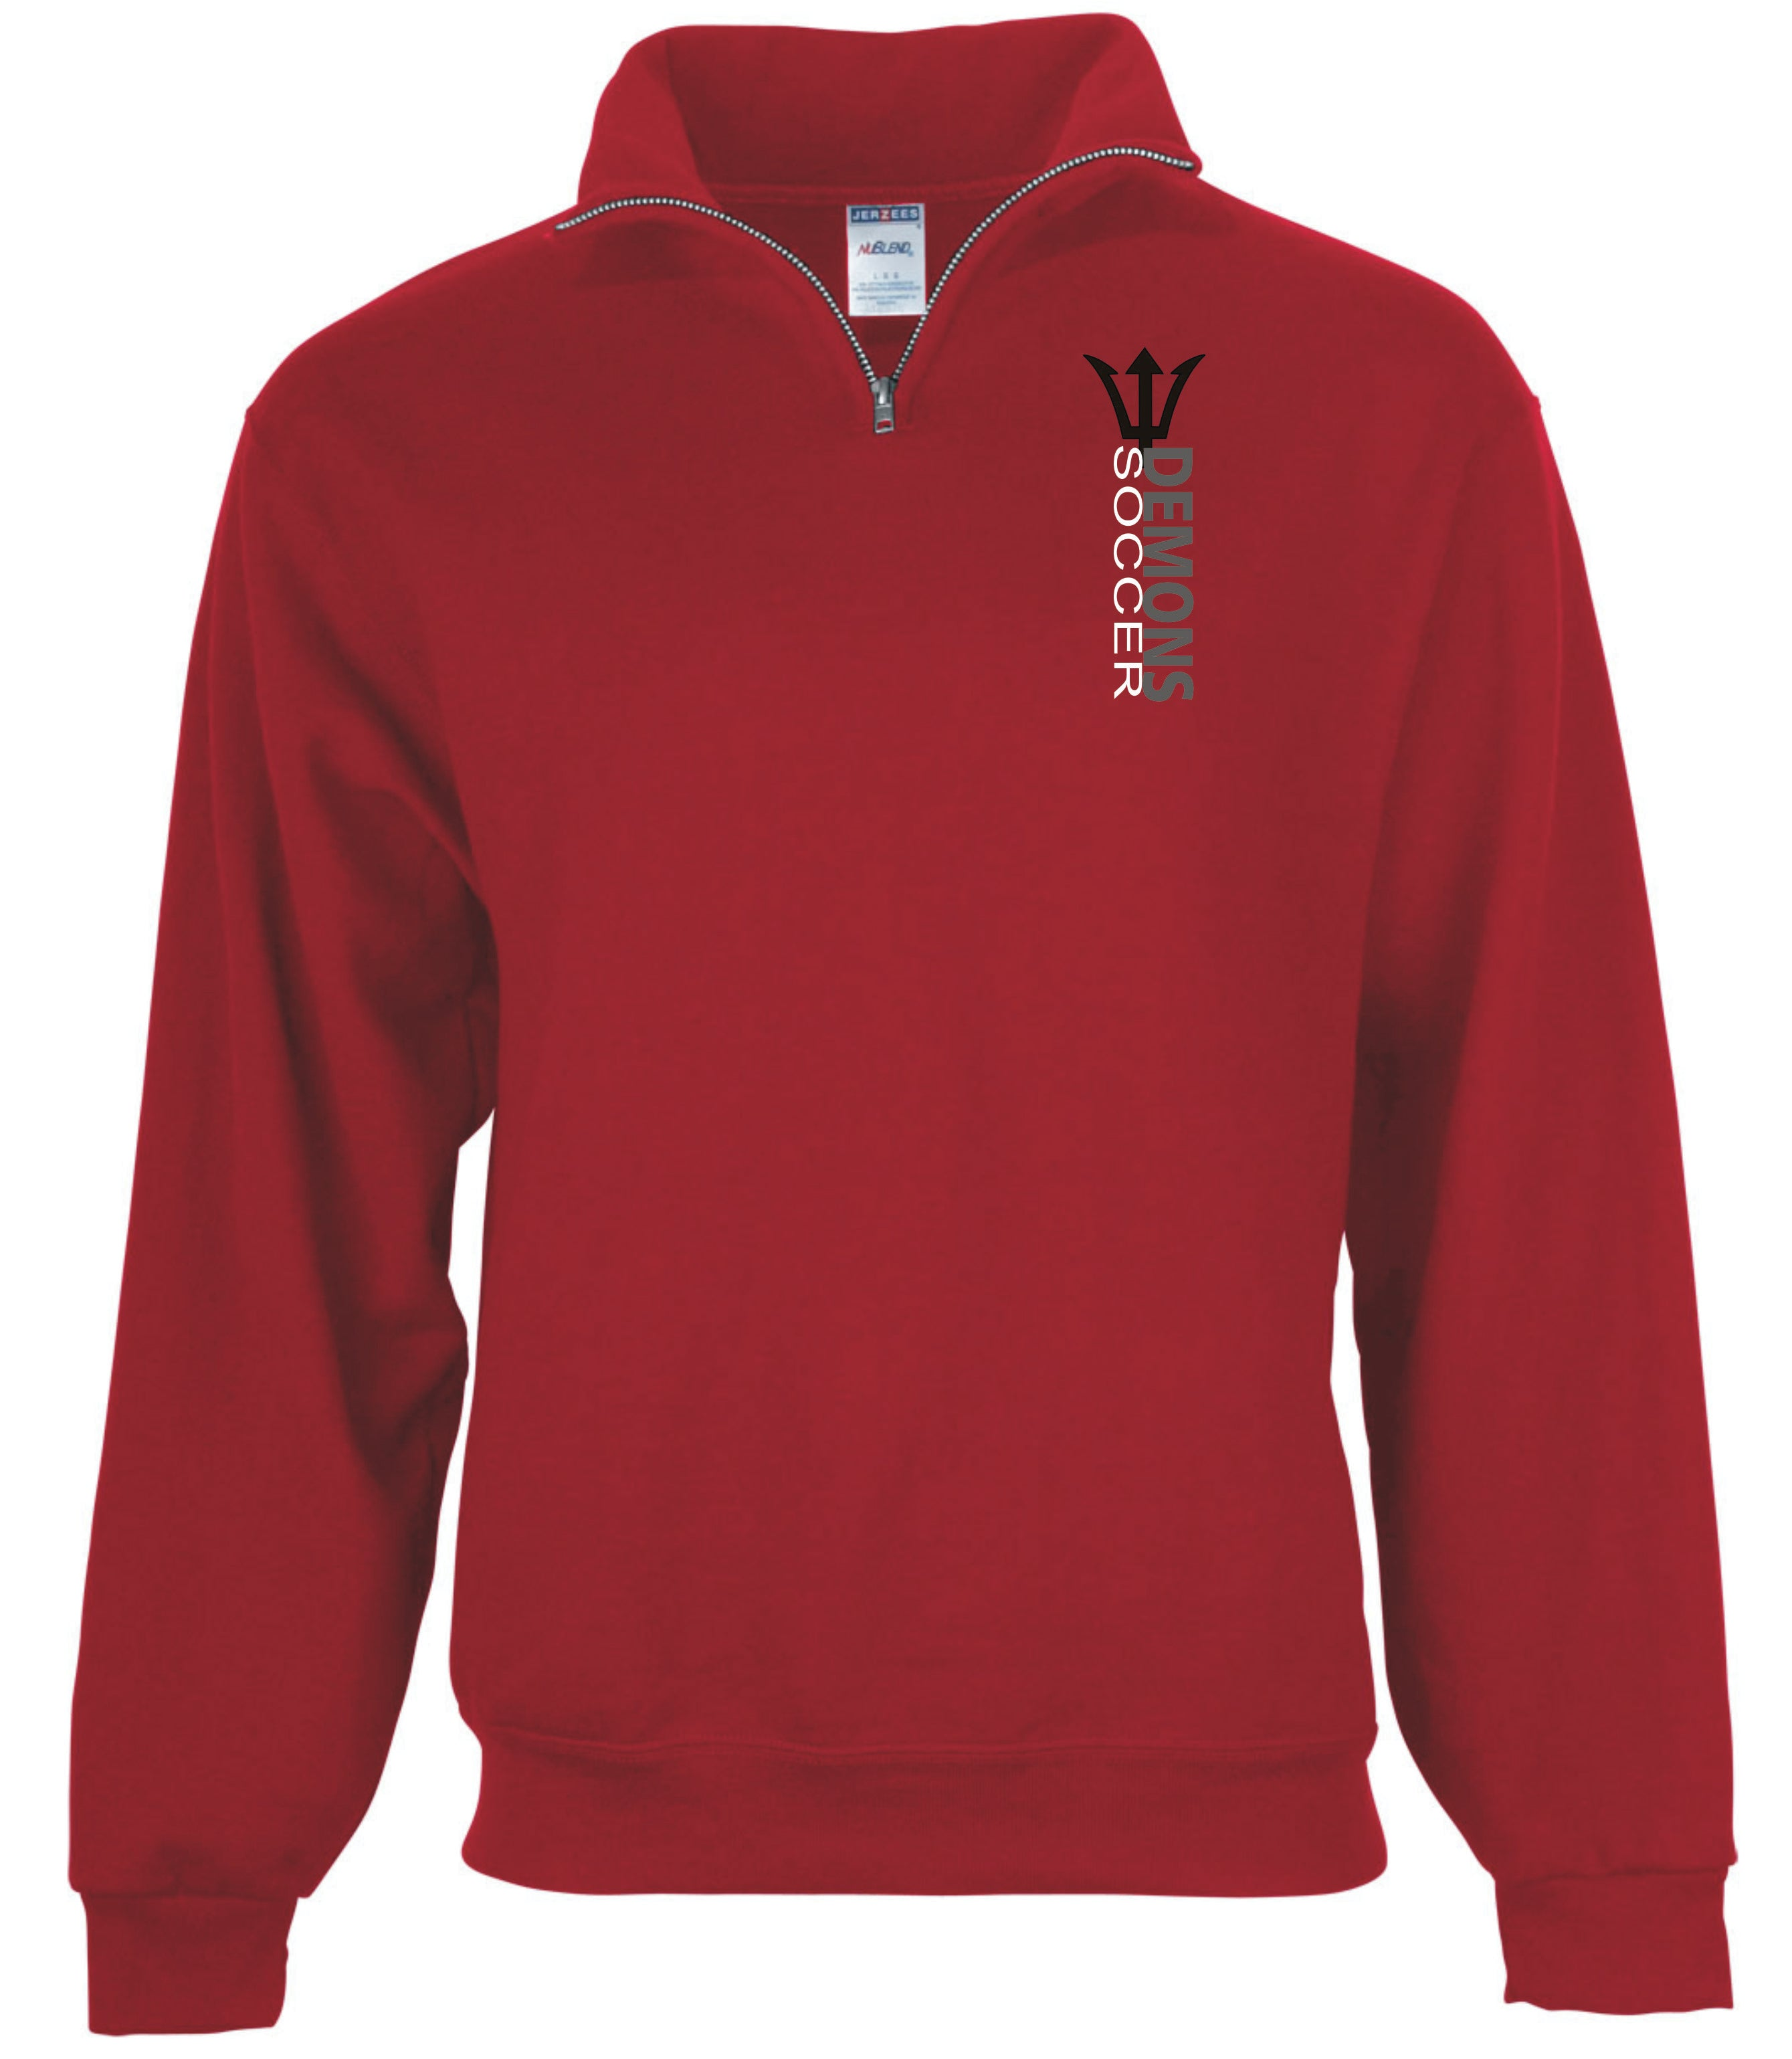 Team quarter zip sweatshirt, demons soccer quarter zip